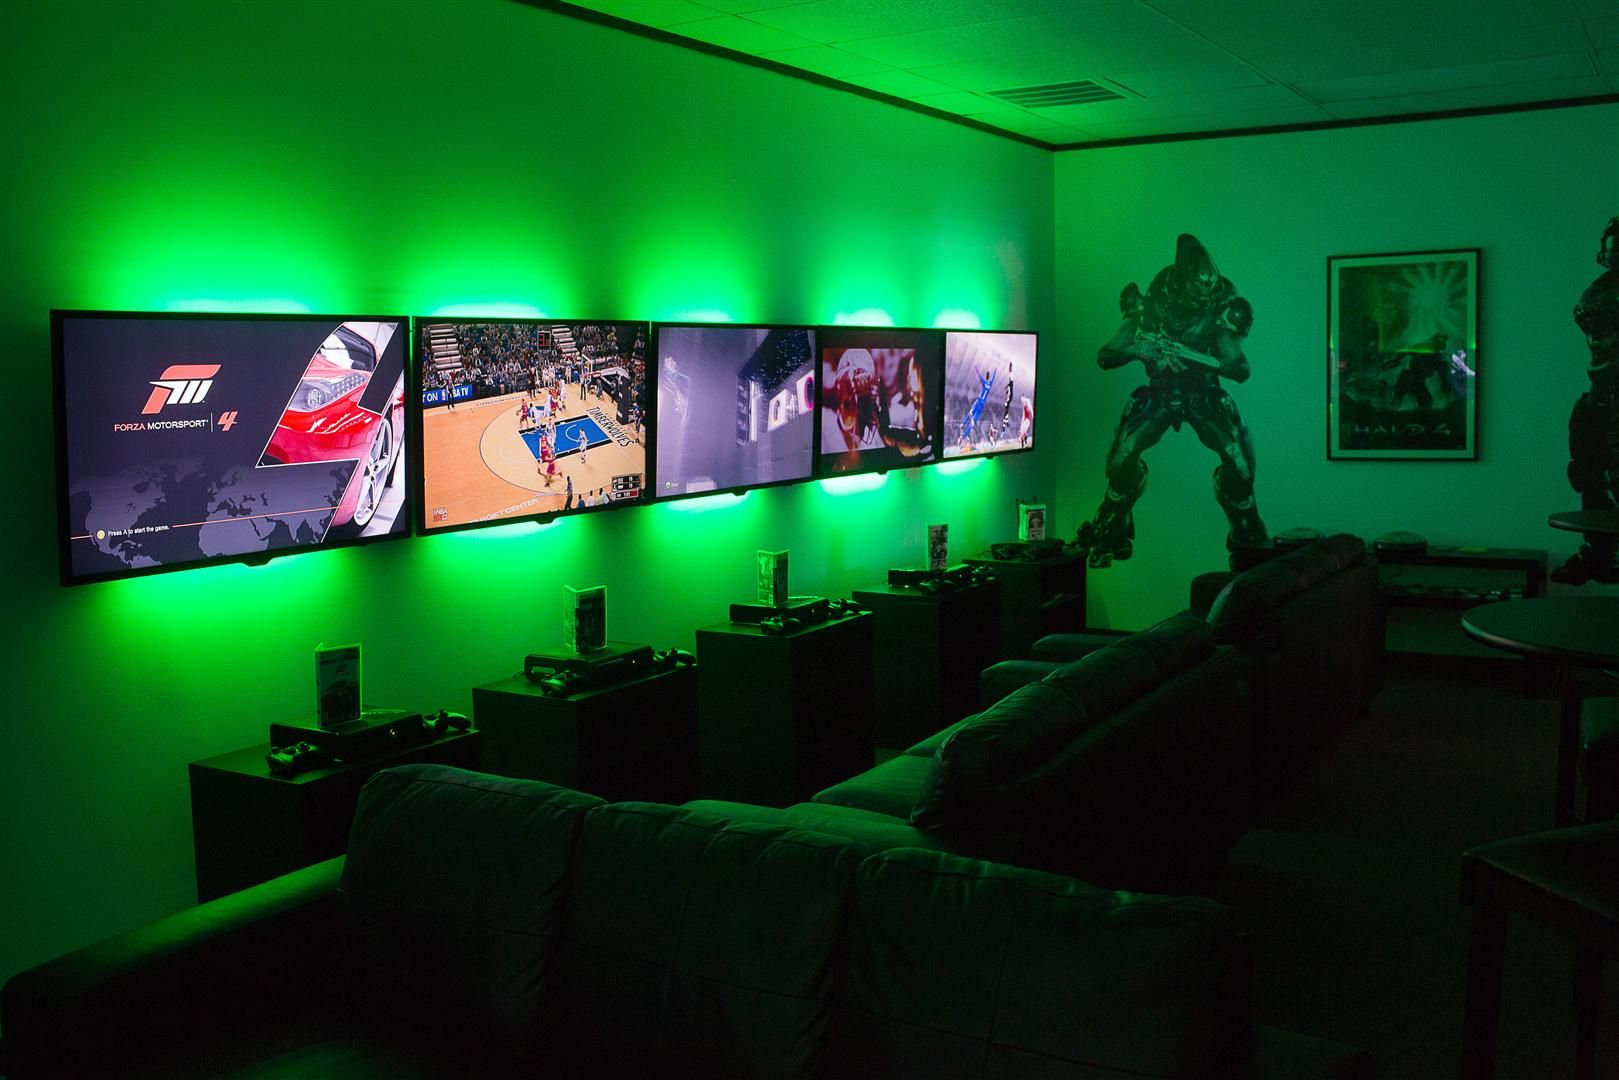 Xbox 360 lan party room oh man dream on right aidens for Room planner game